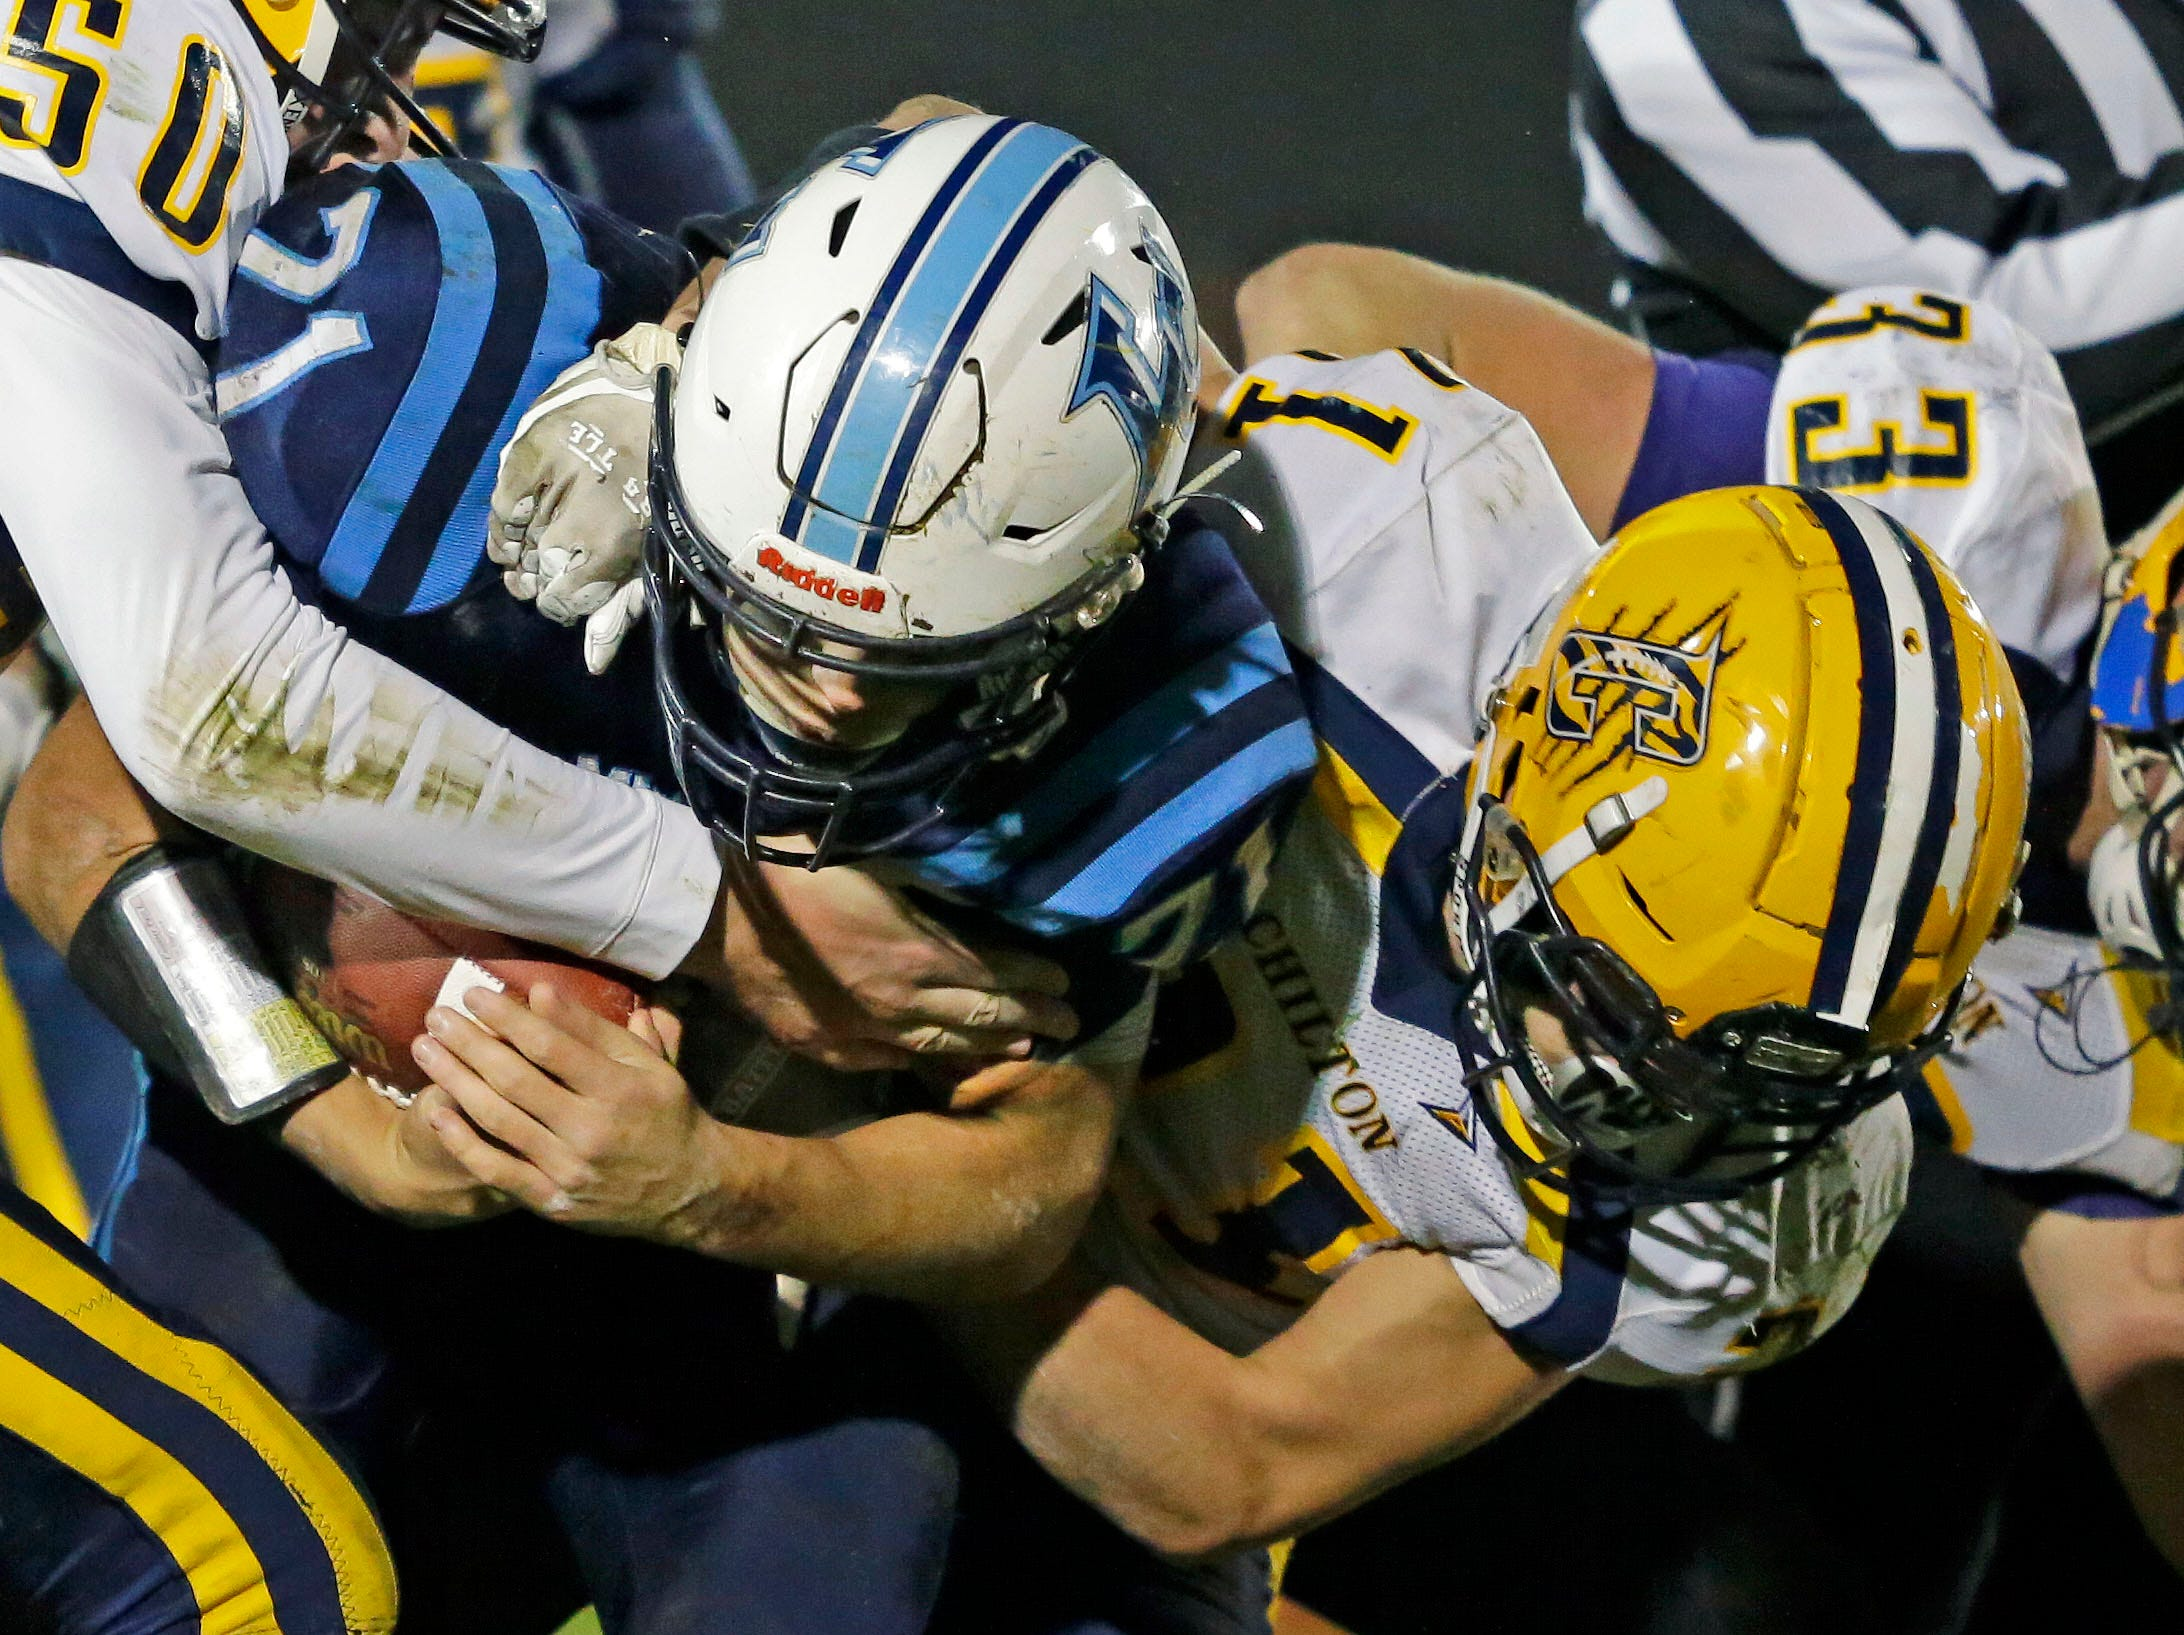 Isaac Van Deurzen of Little Chute is tackled by a trio of Chilton defenders in a WIAA Division 4 second round football playoff game Friday, October 26, 2018, at Little Chute High School in Little Chute, Wis.Ron Page/USA TODAY NETWORK-Wisconsin